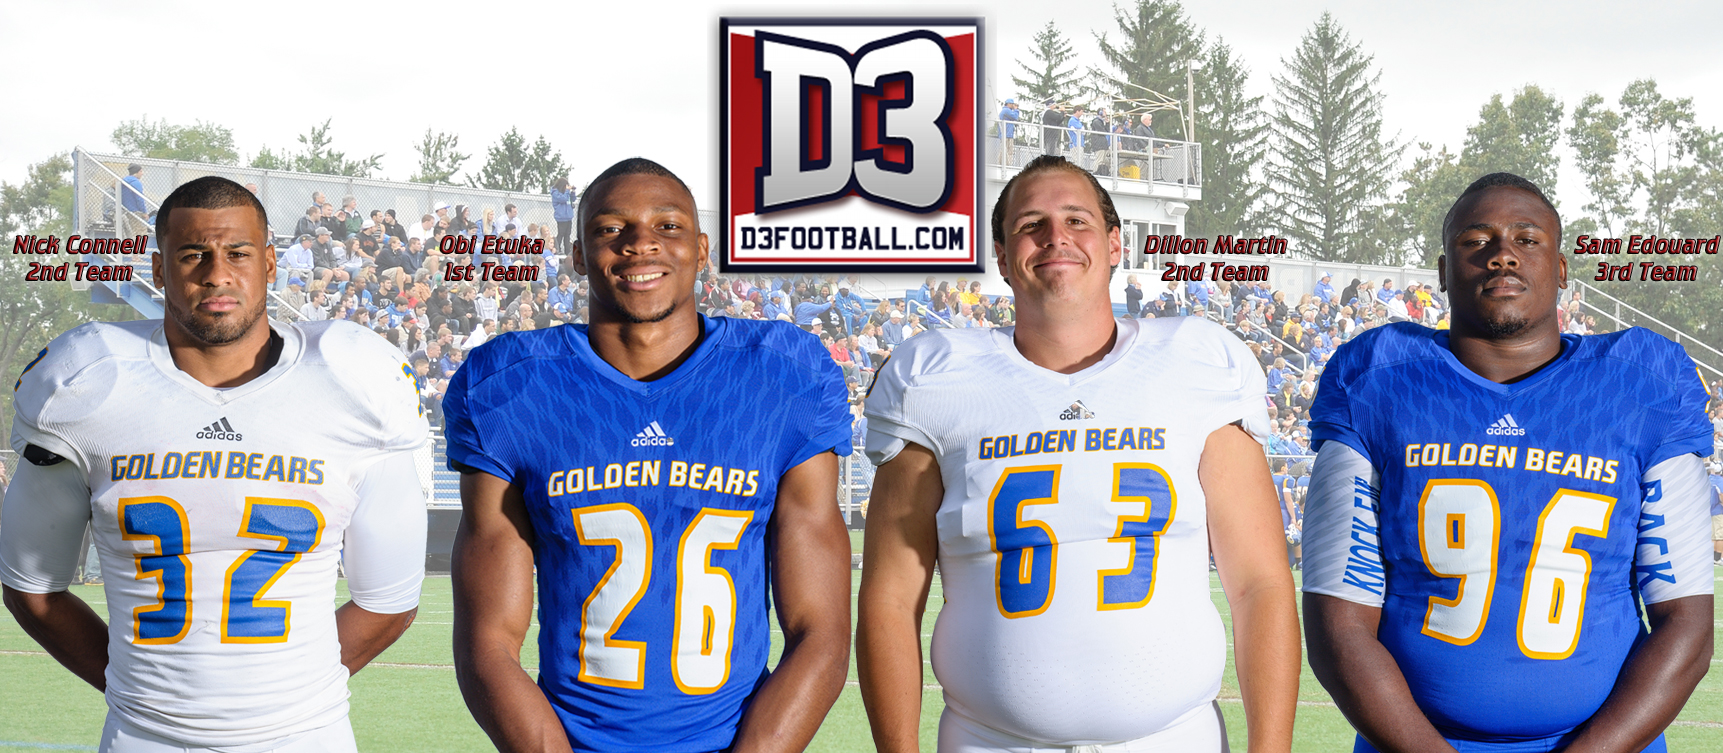 Program Record Four Golden Bears Named to D3football.com All-East Region Team